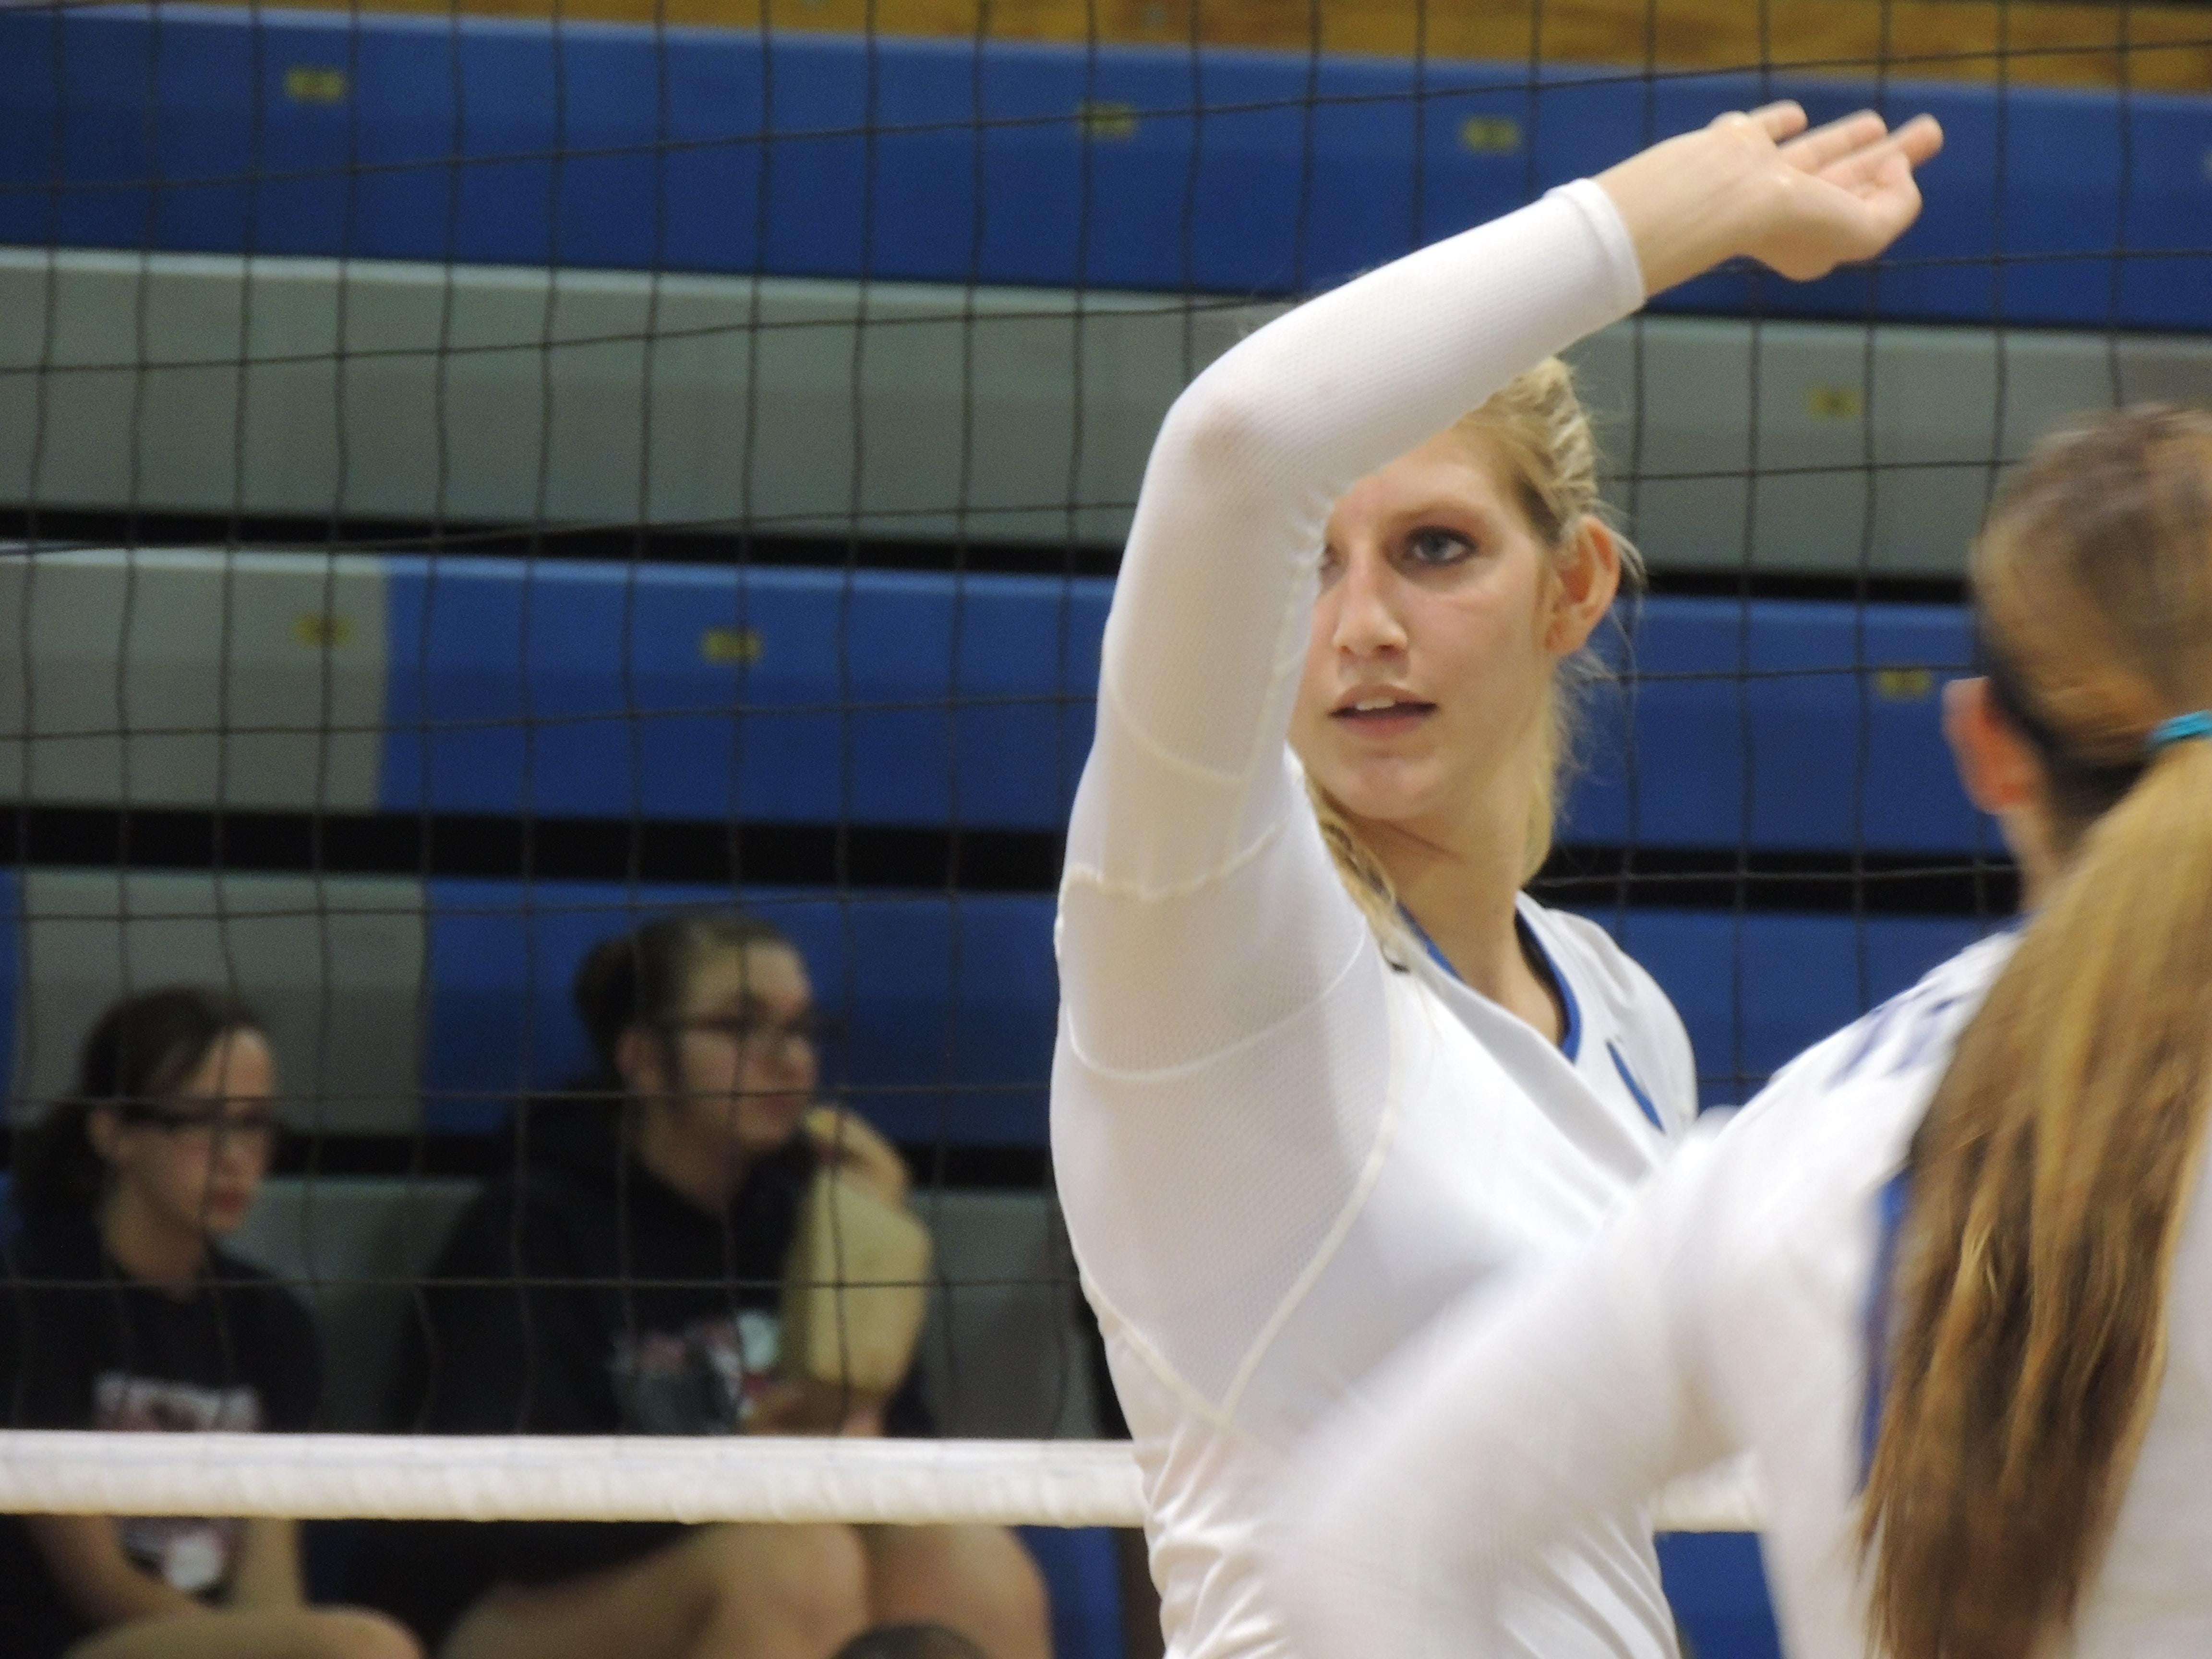 Wynford senior Alyssa Harrer waits for a serve from a teammate at the net.